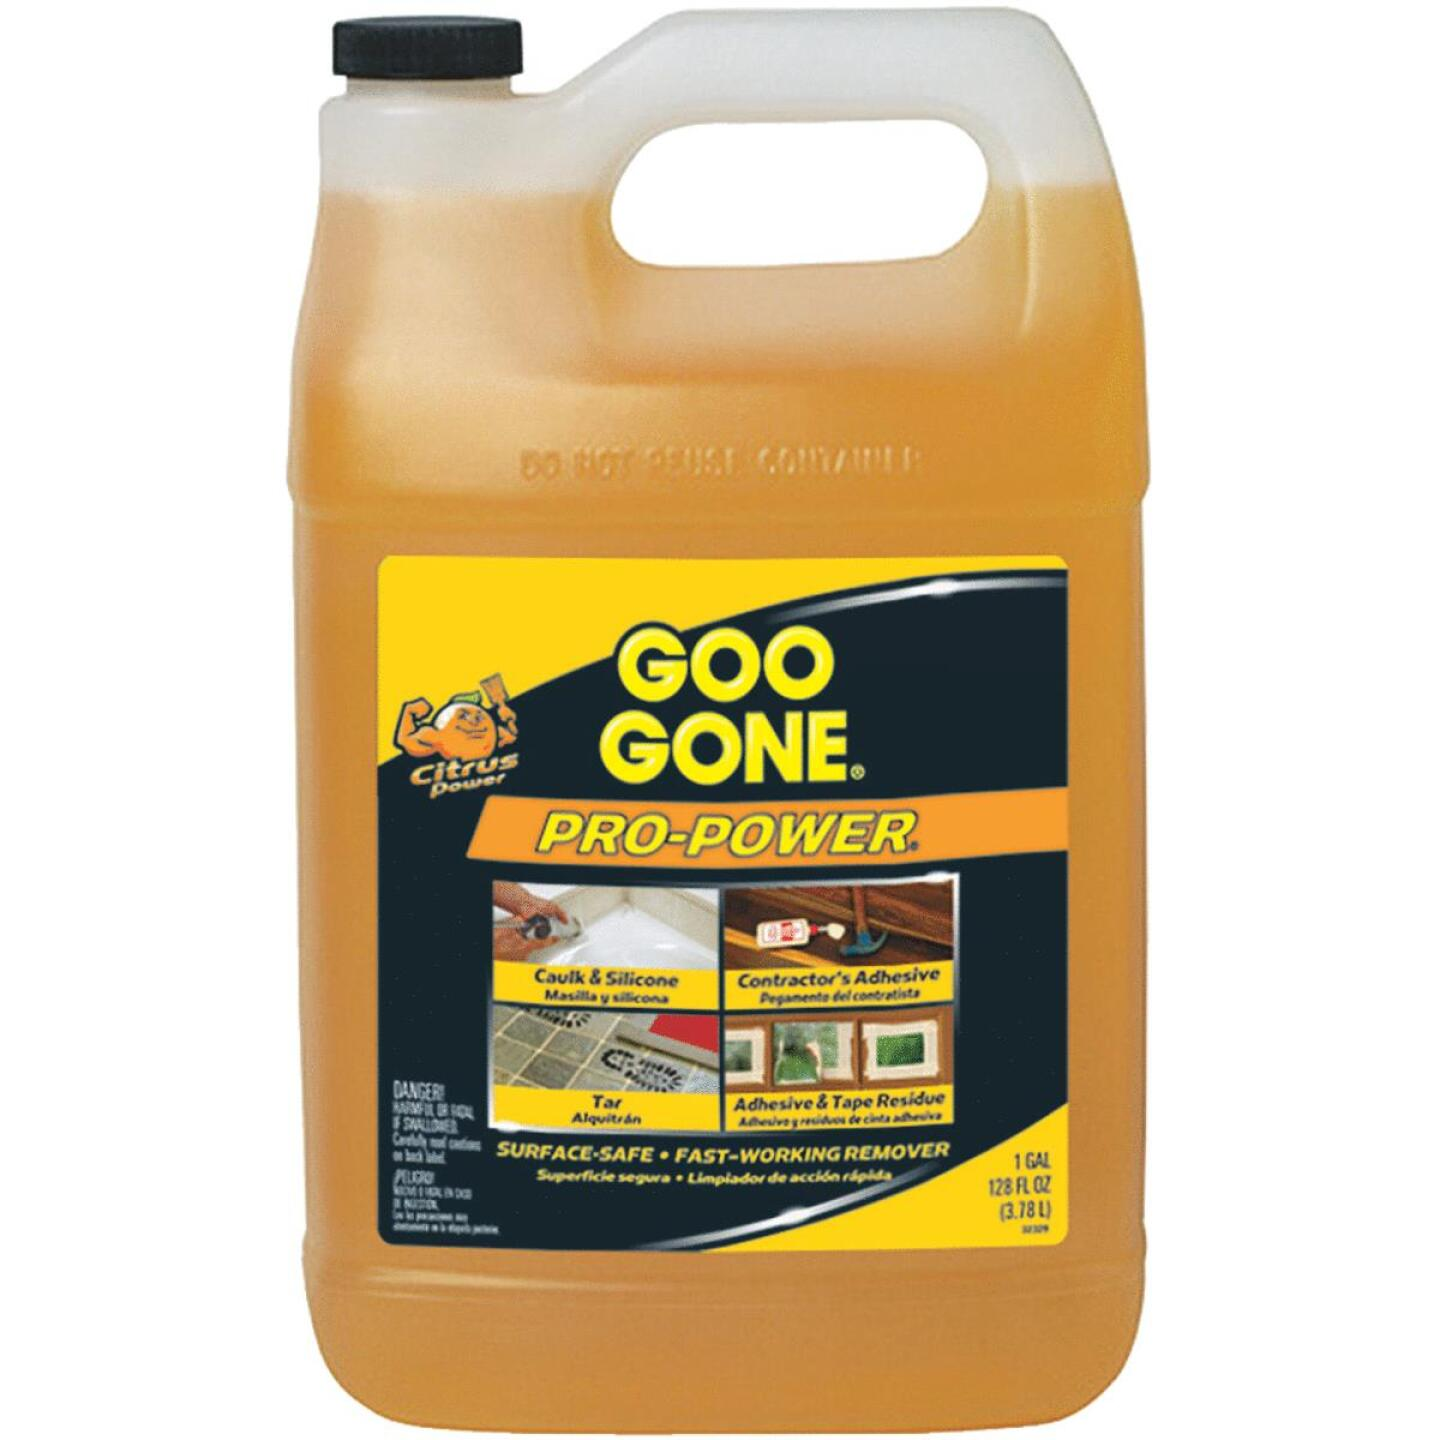 Goo Gone 1 Gal. Pro-Power Adhesive Remover Image 299